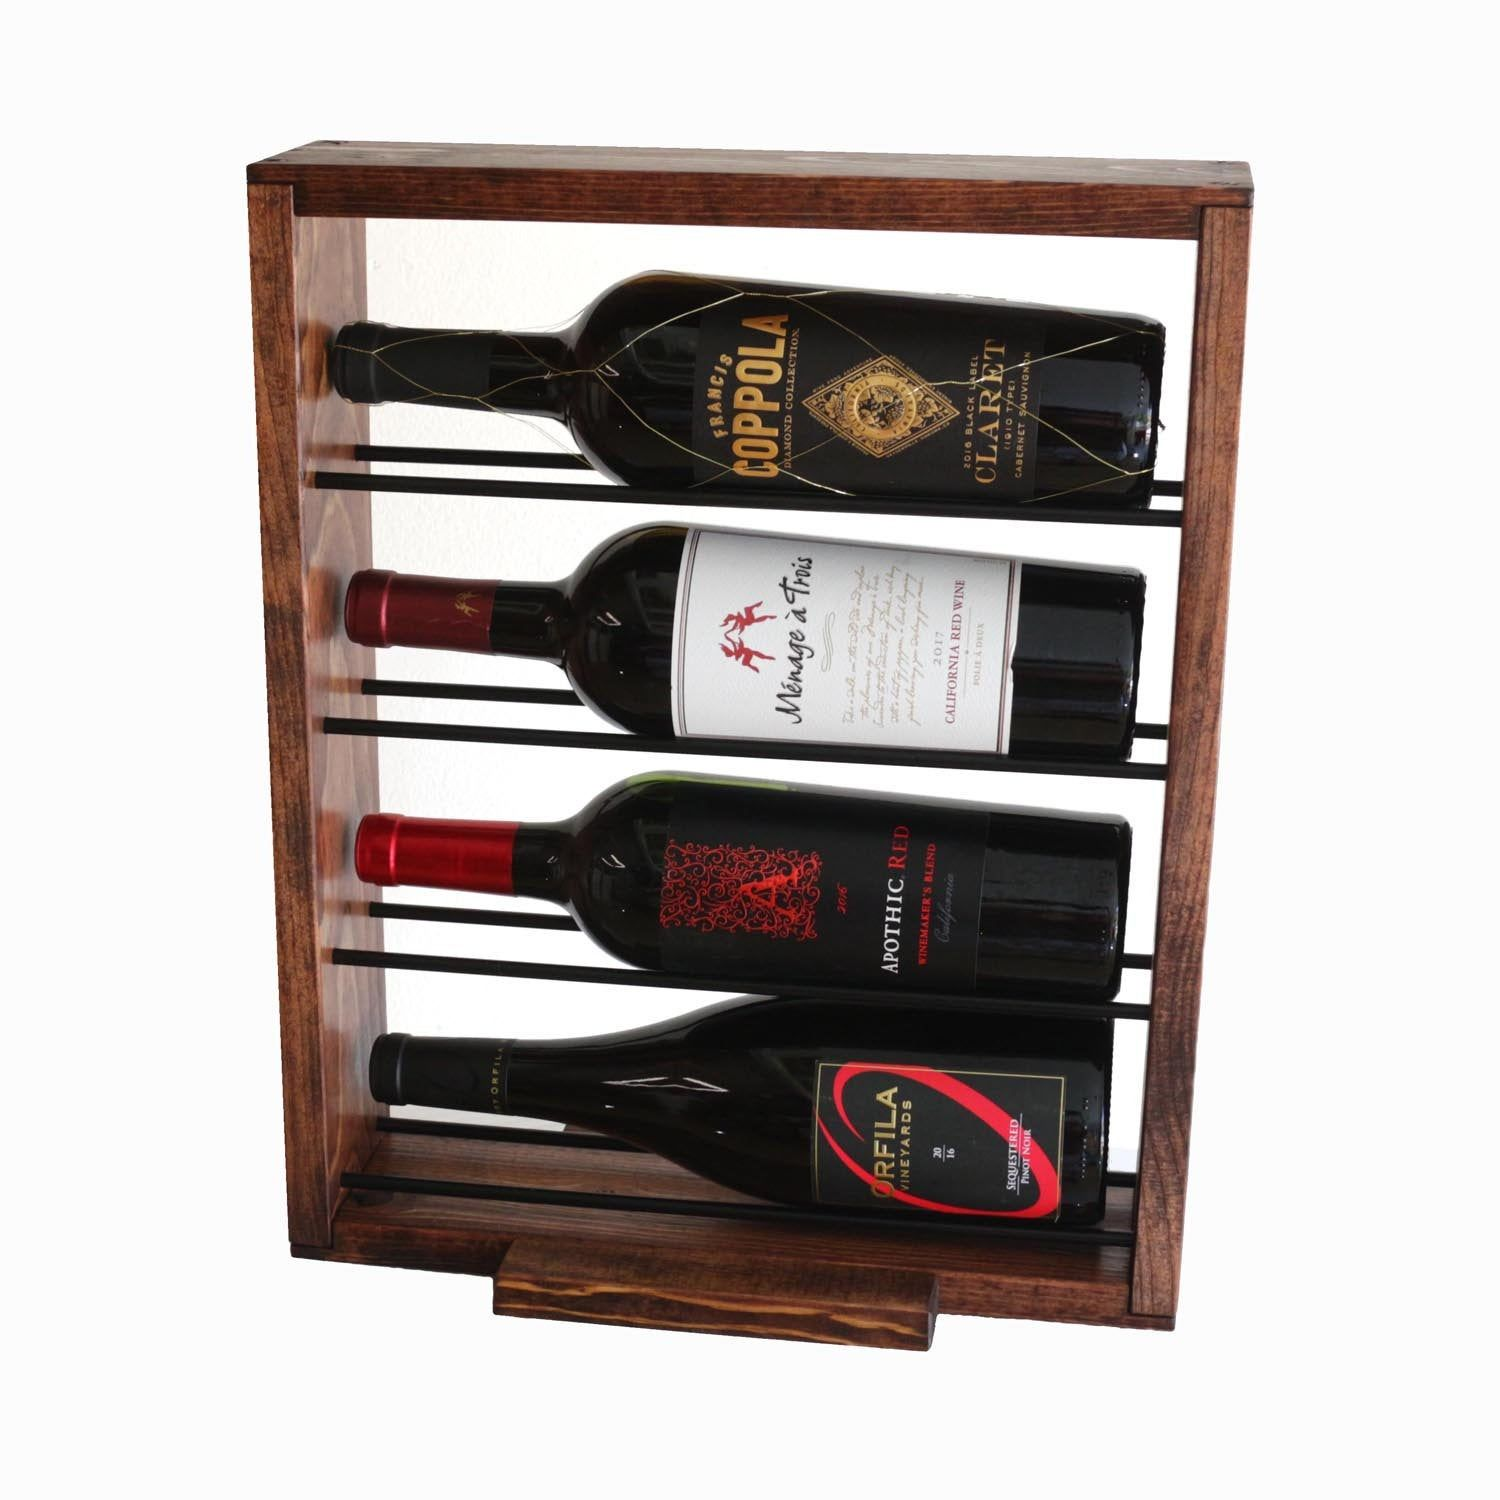 Countertop Horizontal Wine Rack Tabletop Wine Bottle Holder Etsy